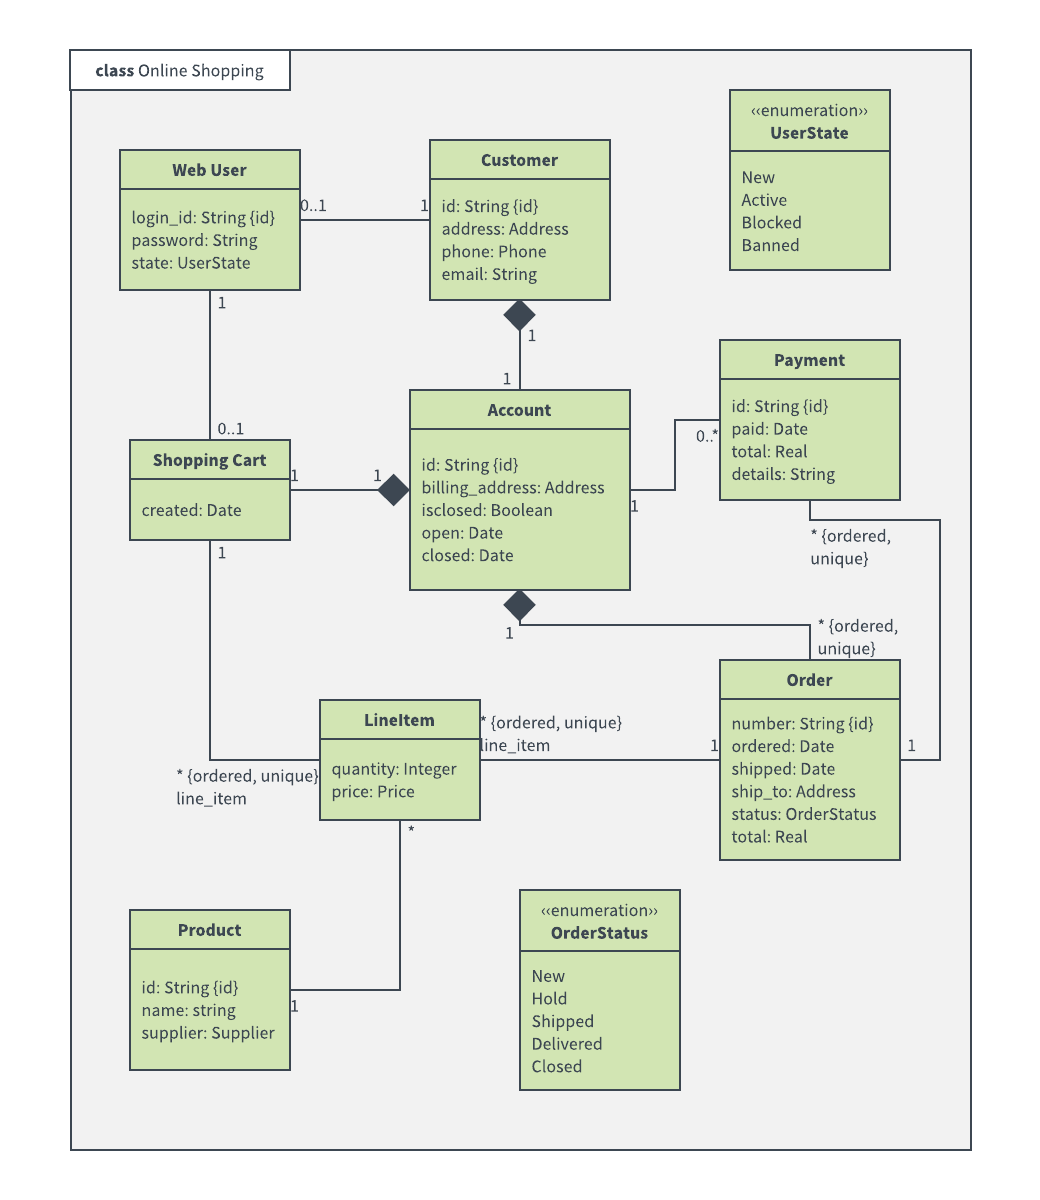 hight resolution of online shopping class diagram example diagram softwareonline shopping class diagram example